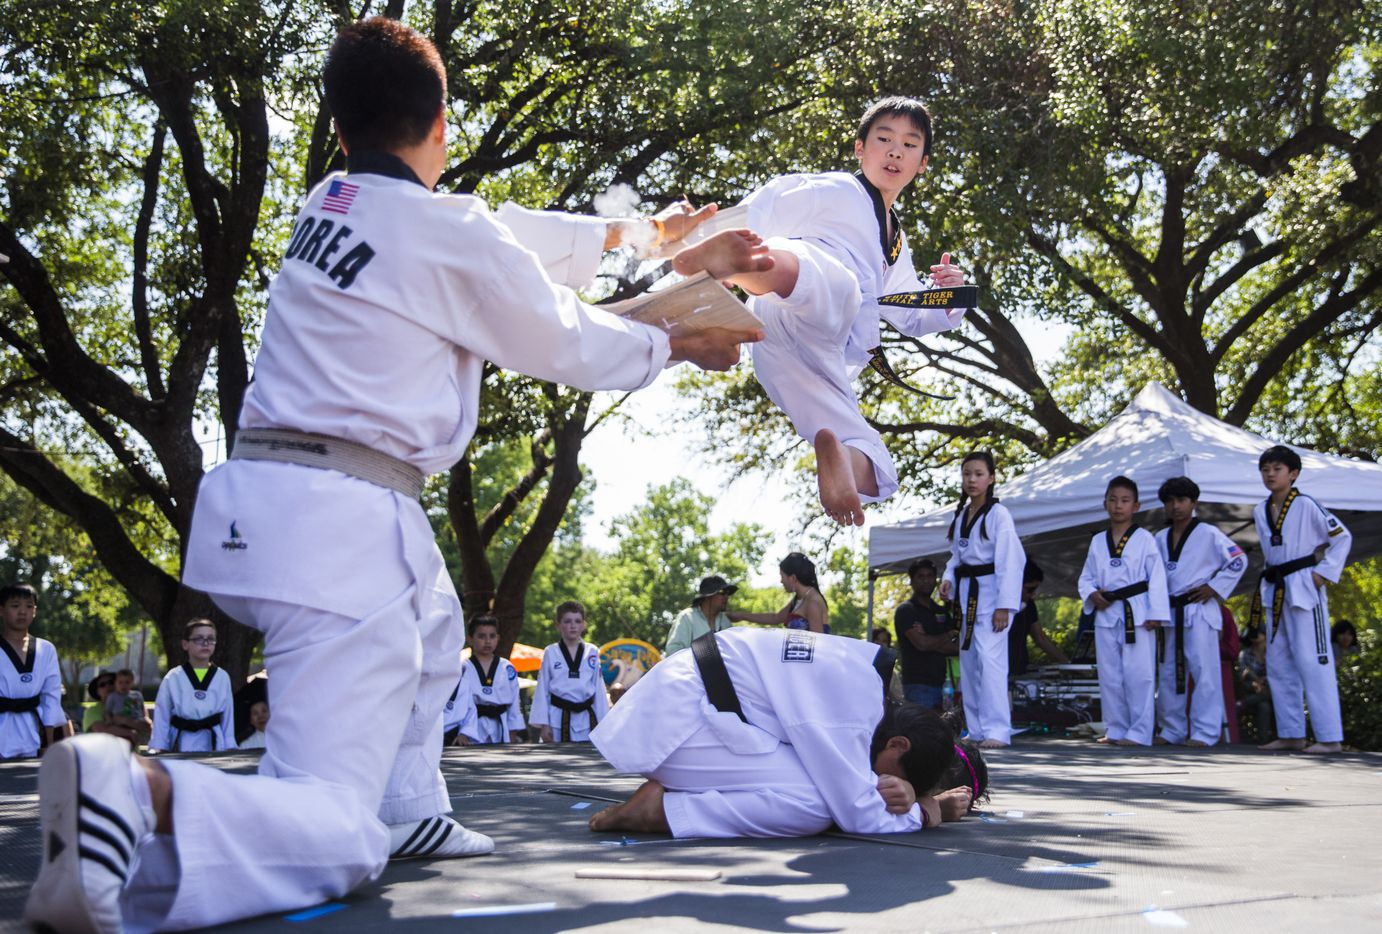 Ayden Nguyen, 11, breaks a board held by Master Joung-Hun Bang as they perform with other members of US White Tiger Martial Arts of Plano, performs during the 27th Home Depot Asian Festival on Saturday, May 13, 2017 at Cotton Bowl Plaza in Dallas Fair Park.